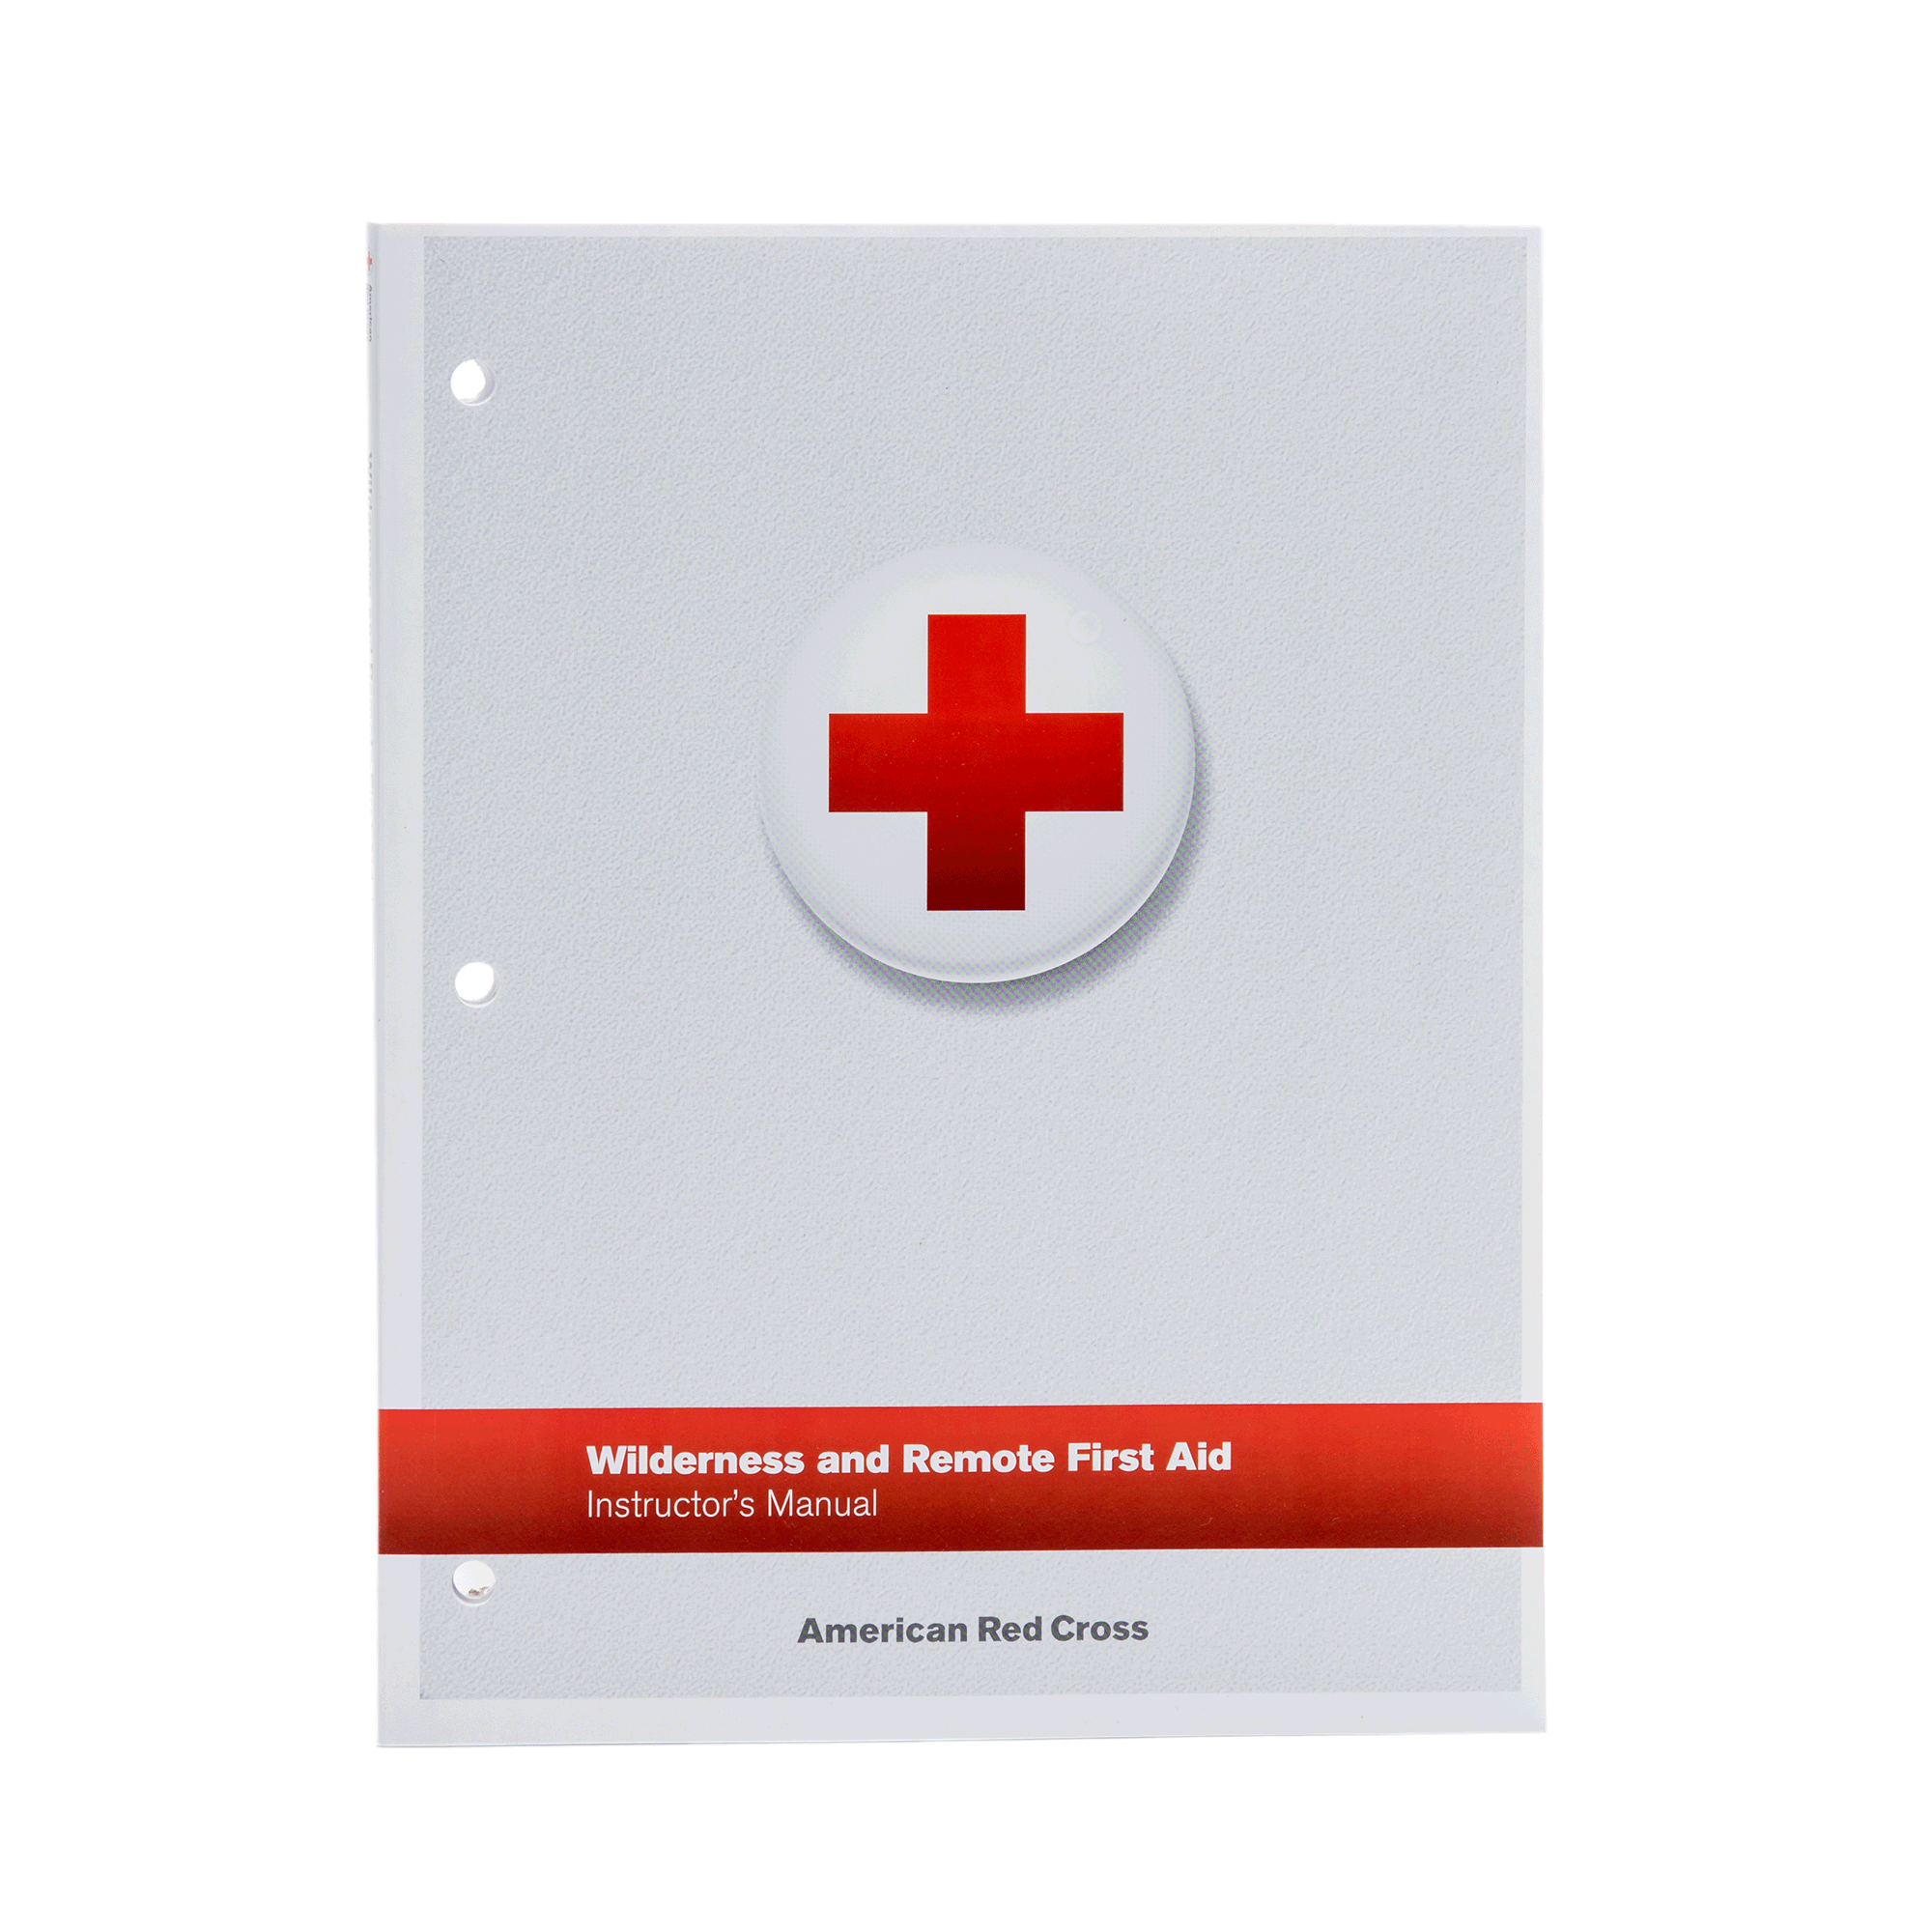 American Red Cross Lifeguarding Manual 2018 User Guide Manual That